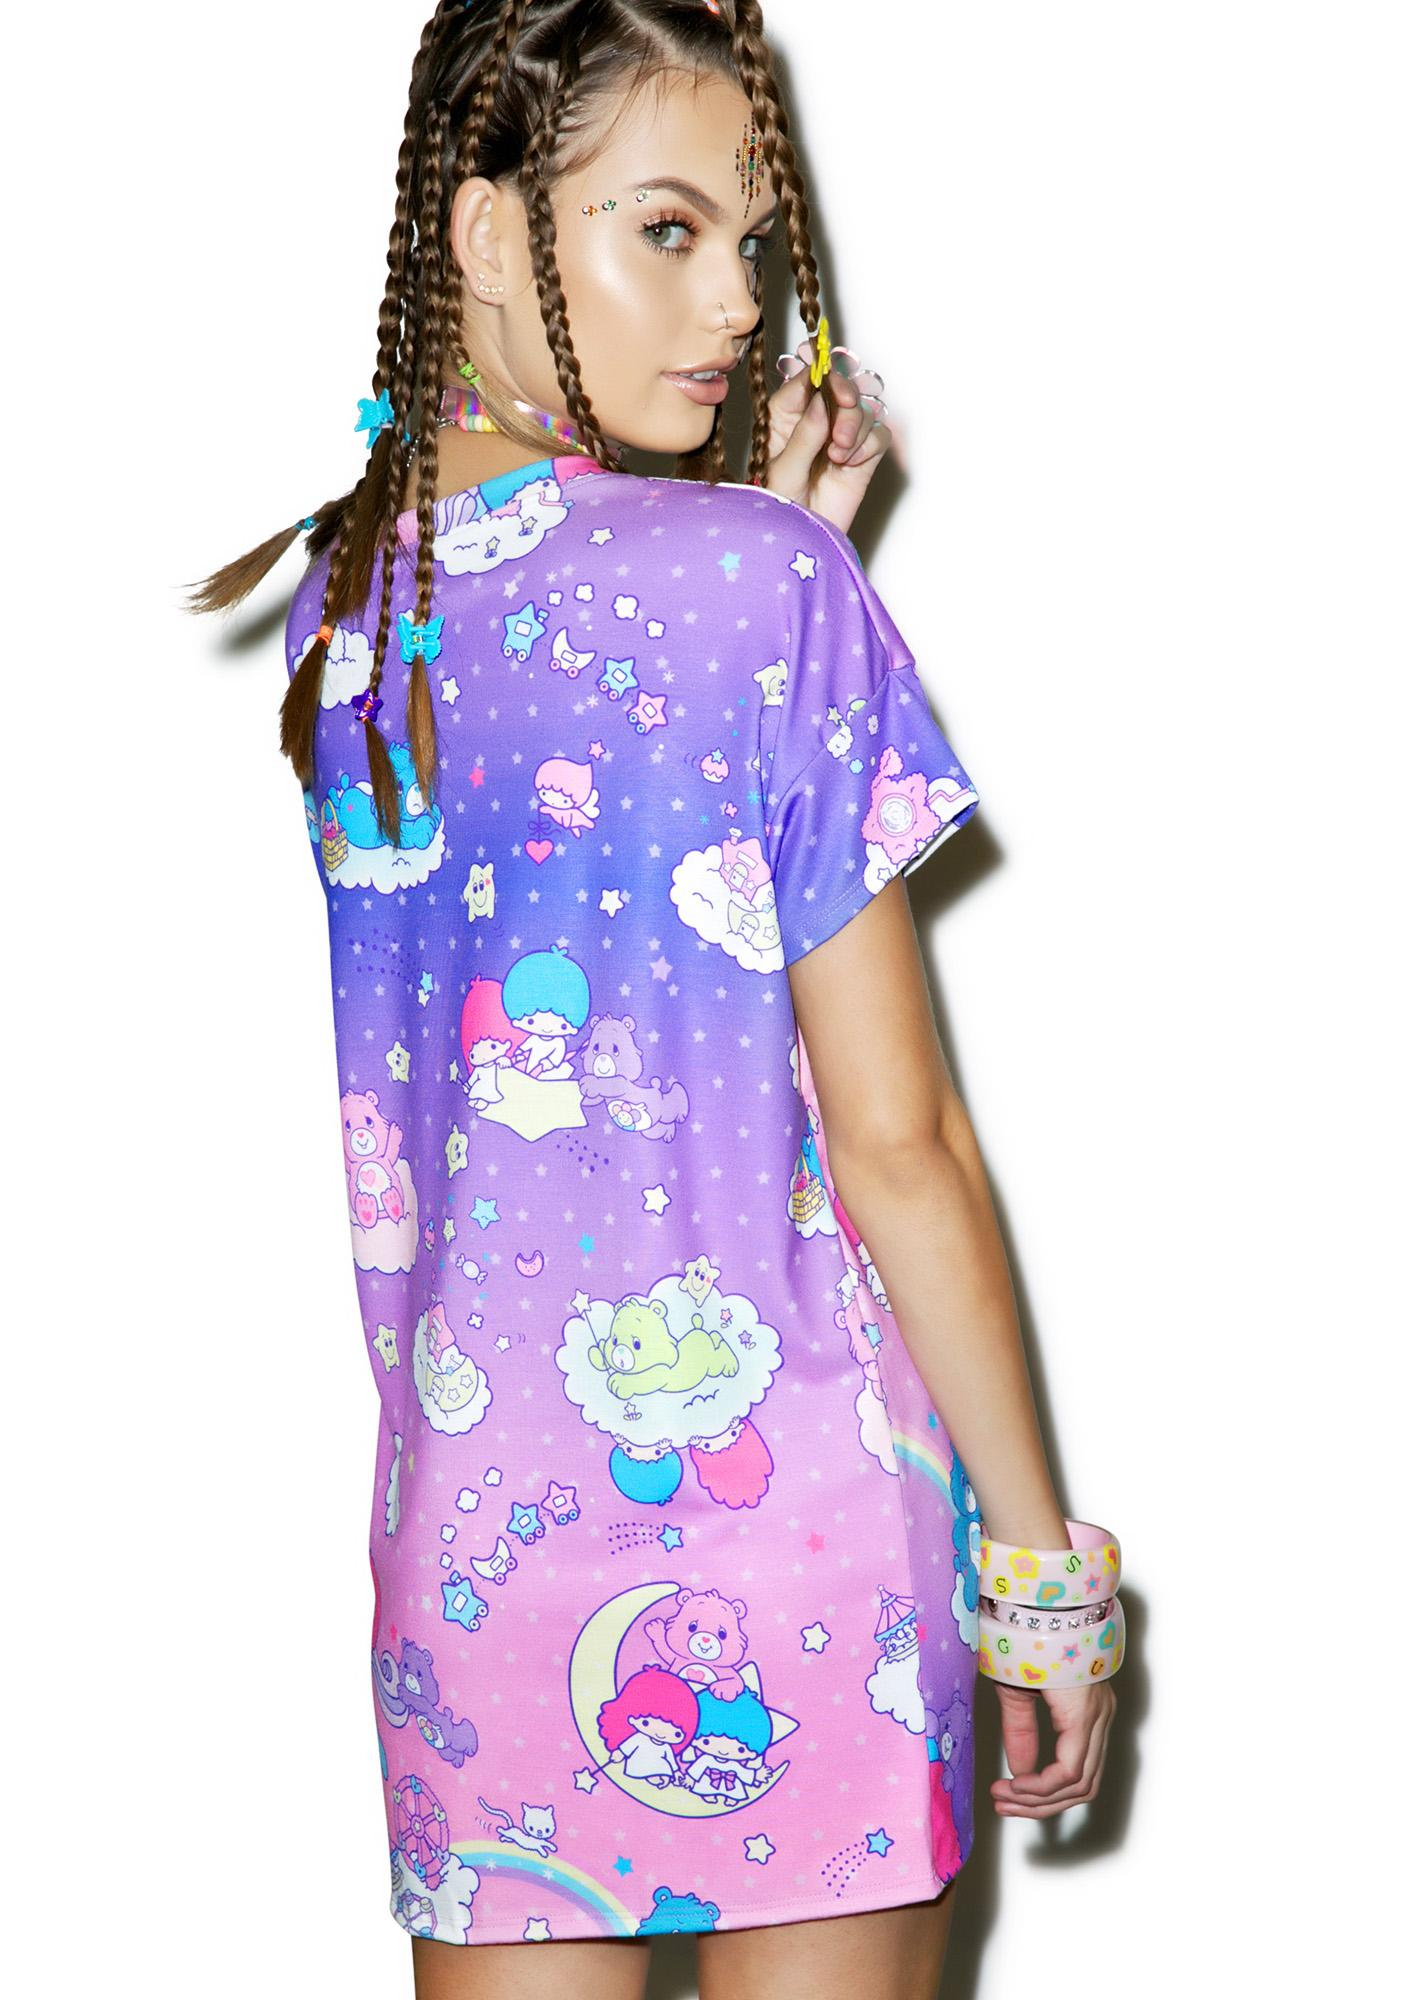 Japan L.A. Little Stars X Care Bears Boxy Top